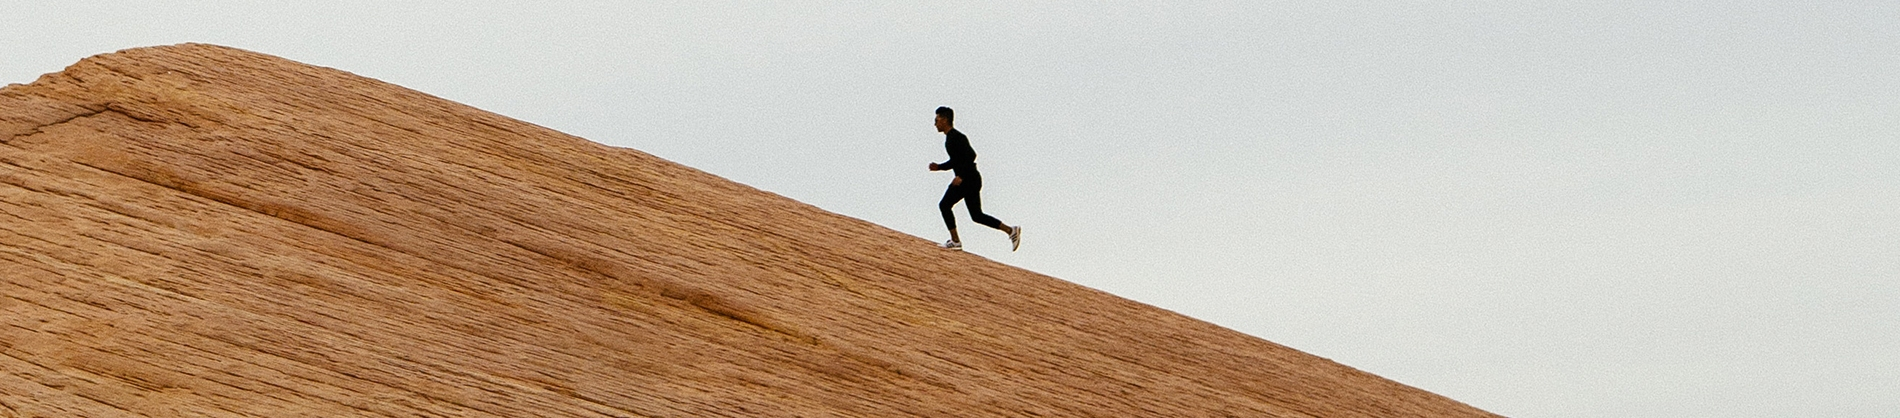 A man running up a rocky hill